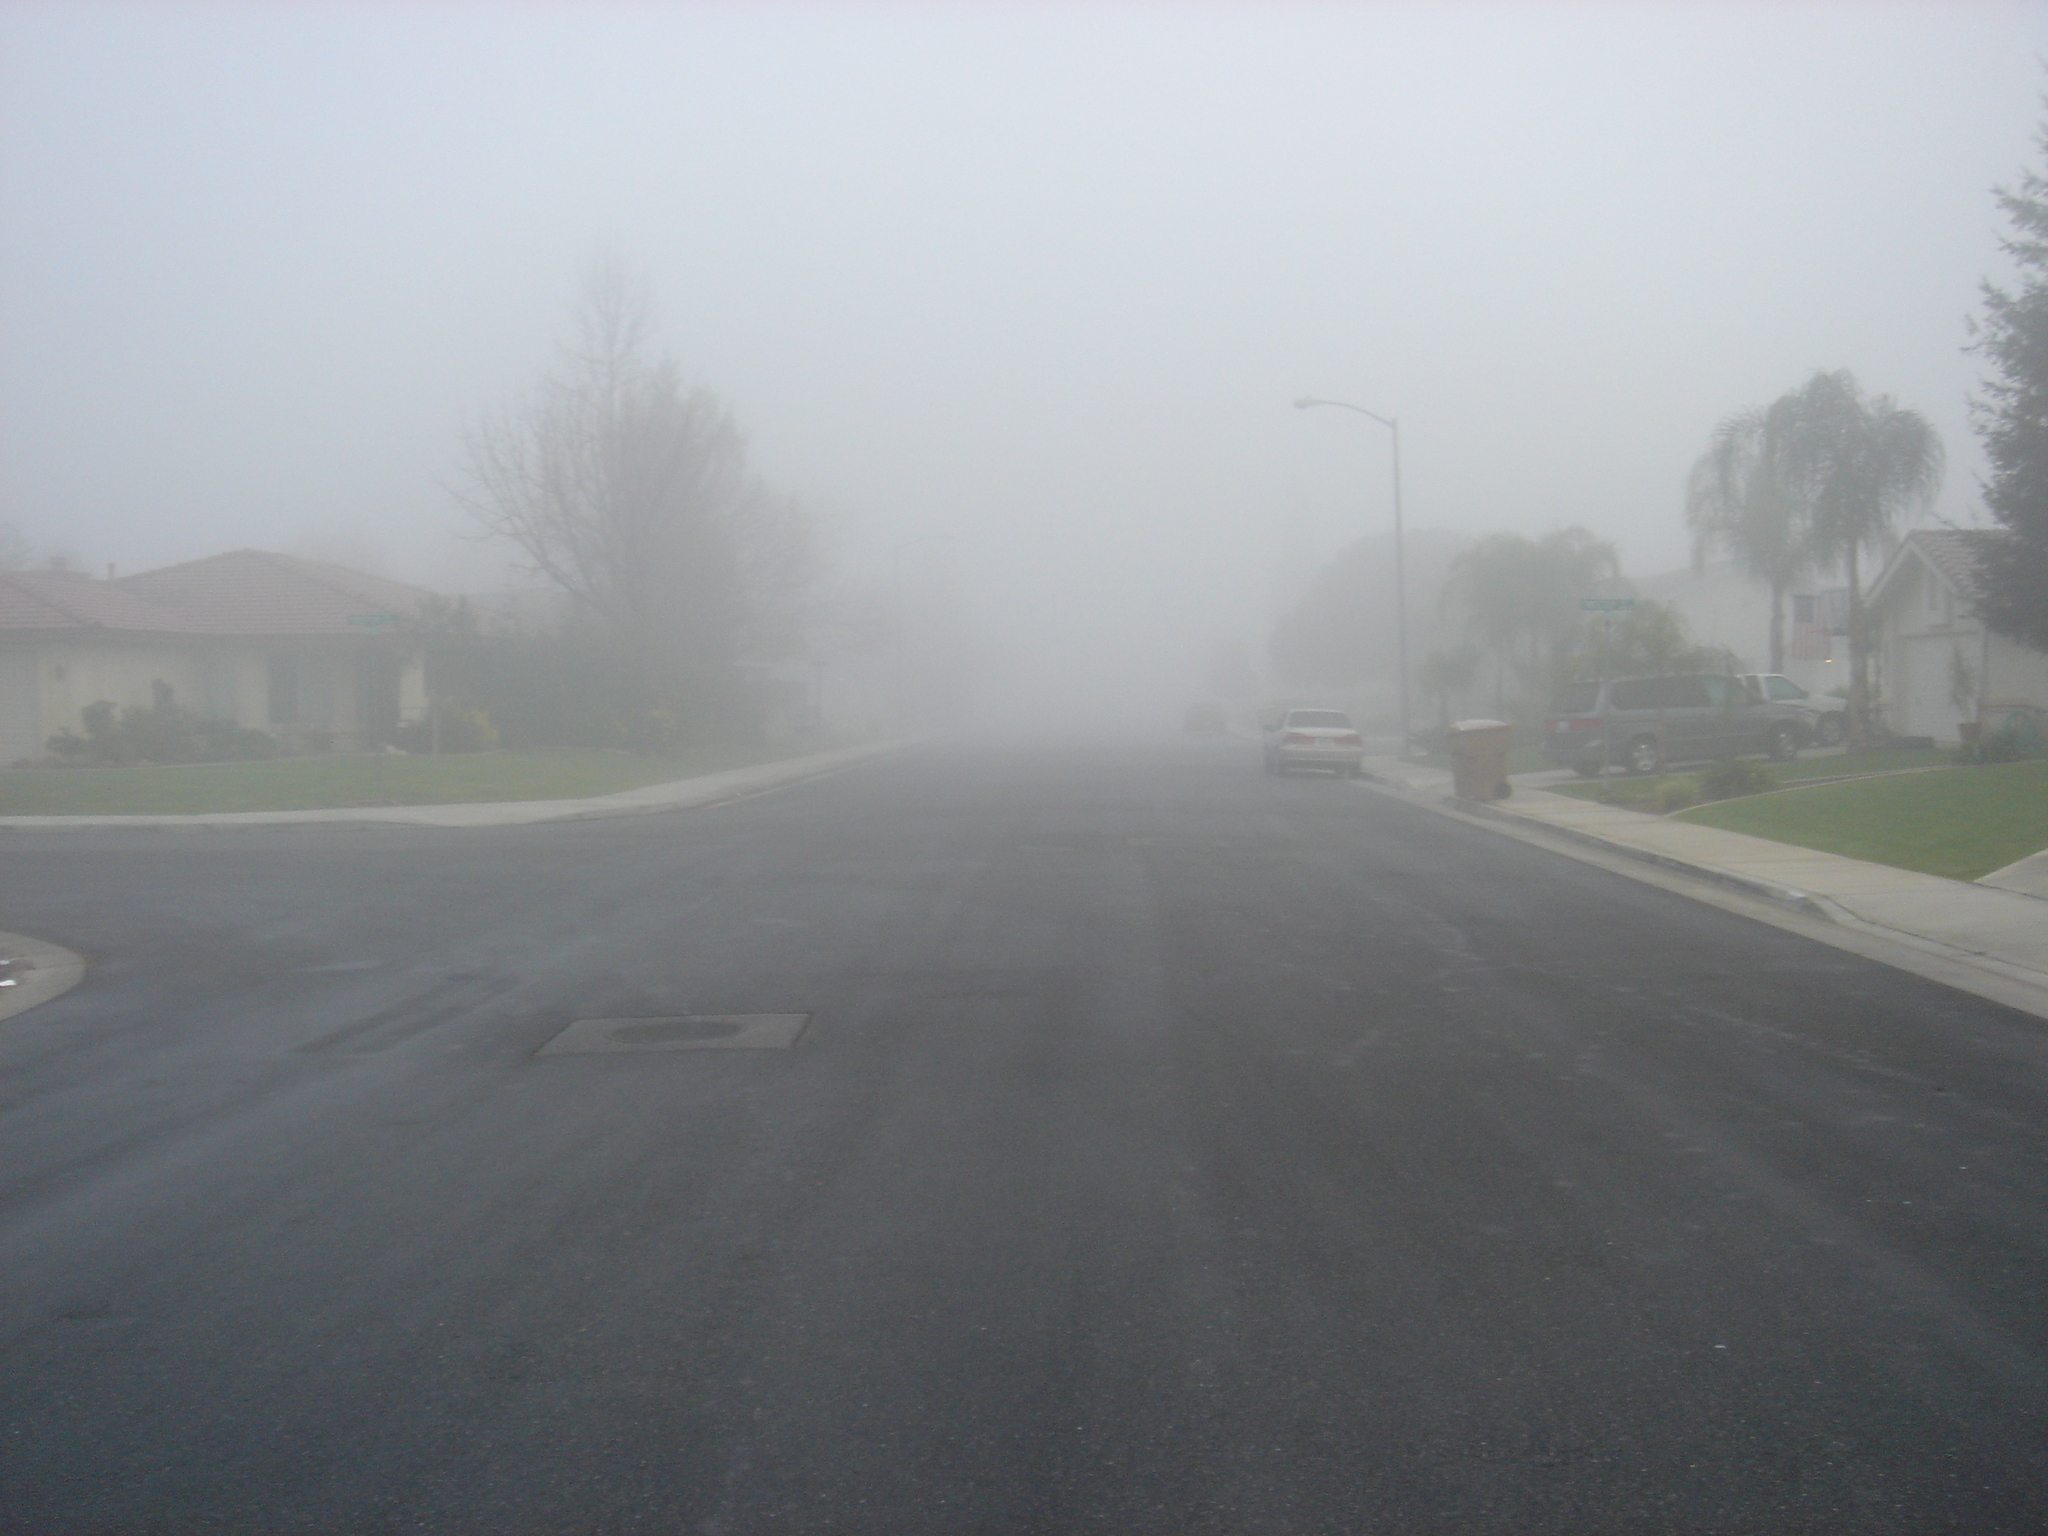 Tule fog in Bakersfield, California